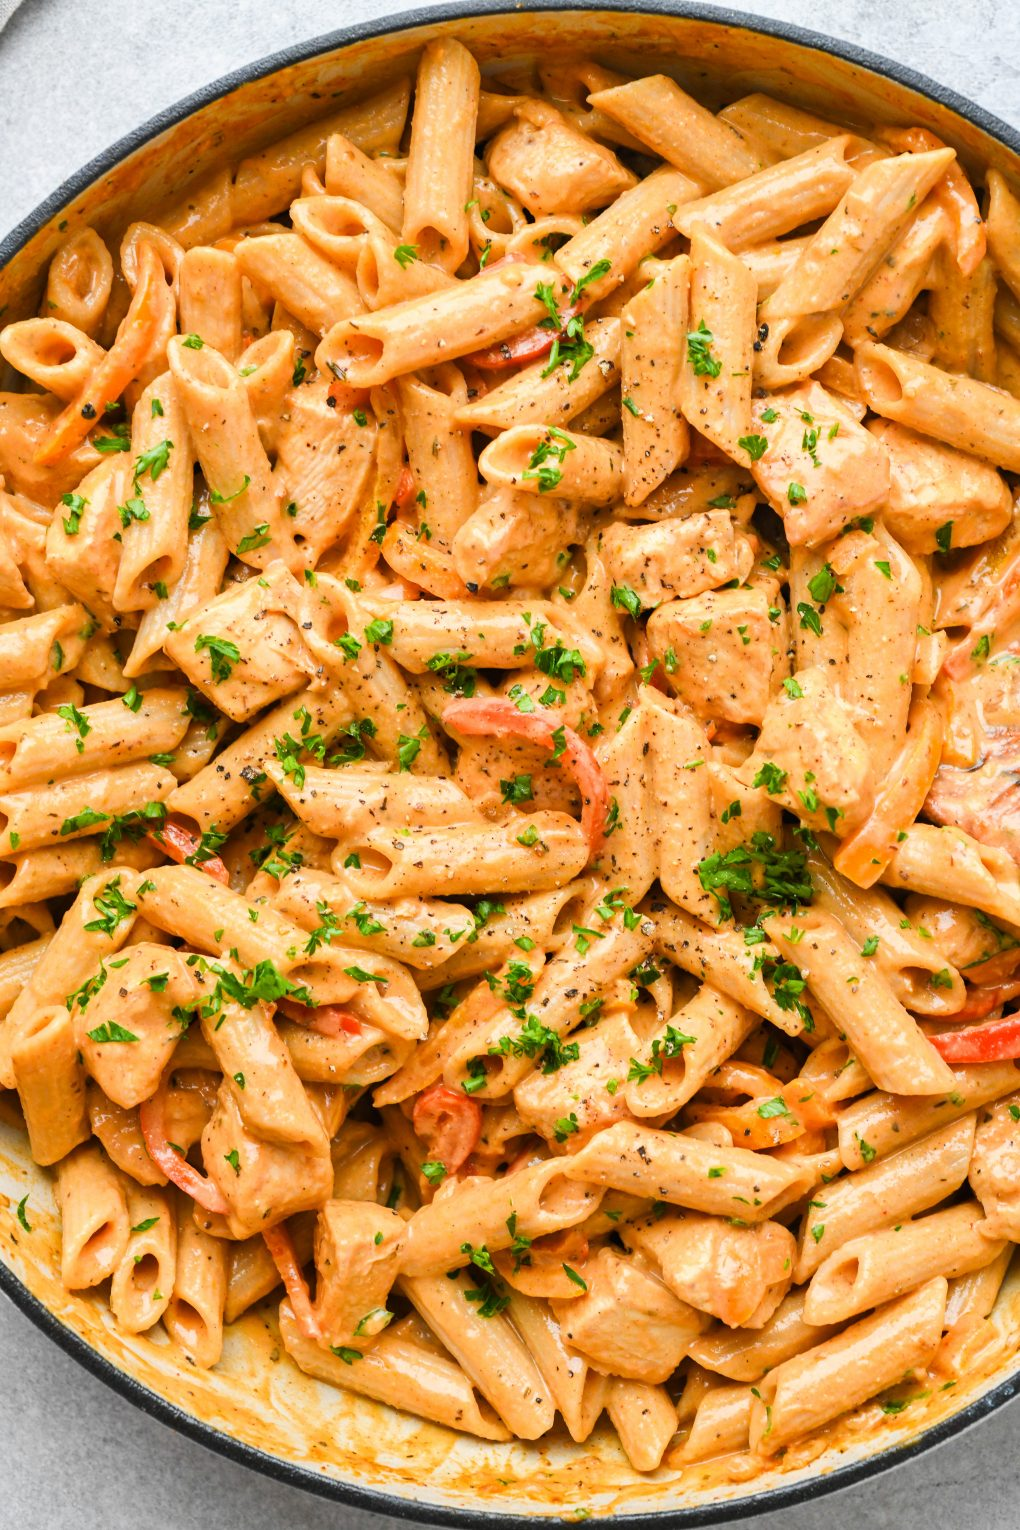 Close up image of a ceramic skillet filled with super creamy cajun chicken pasta. Topped with chopped parsley on a light colored background.